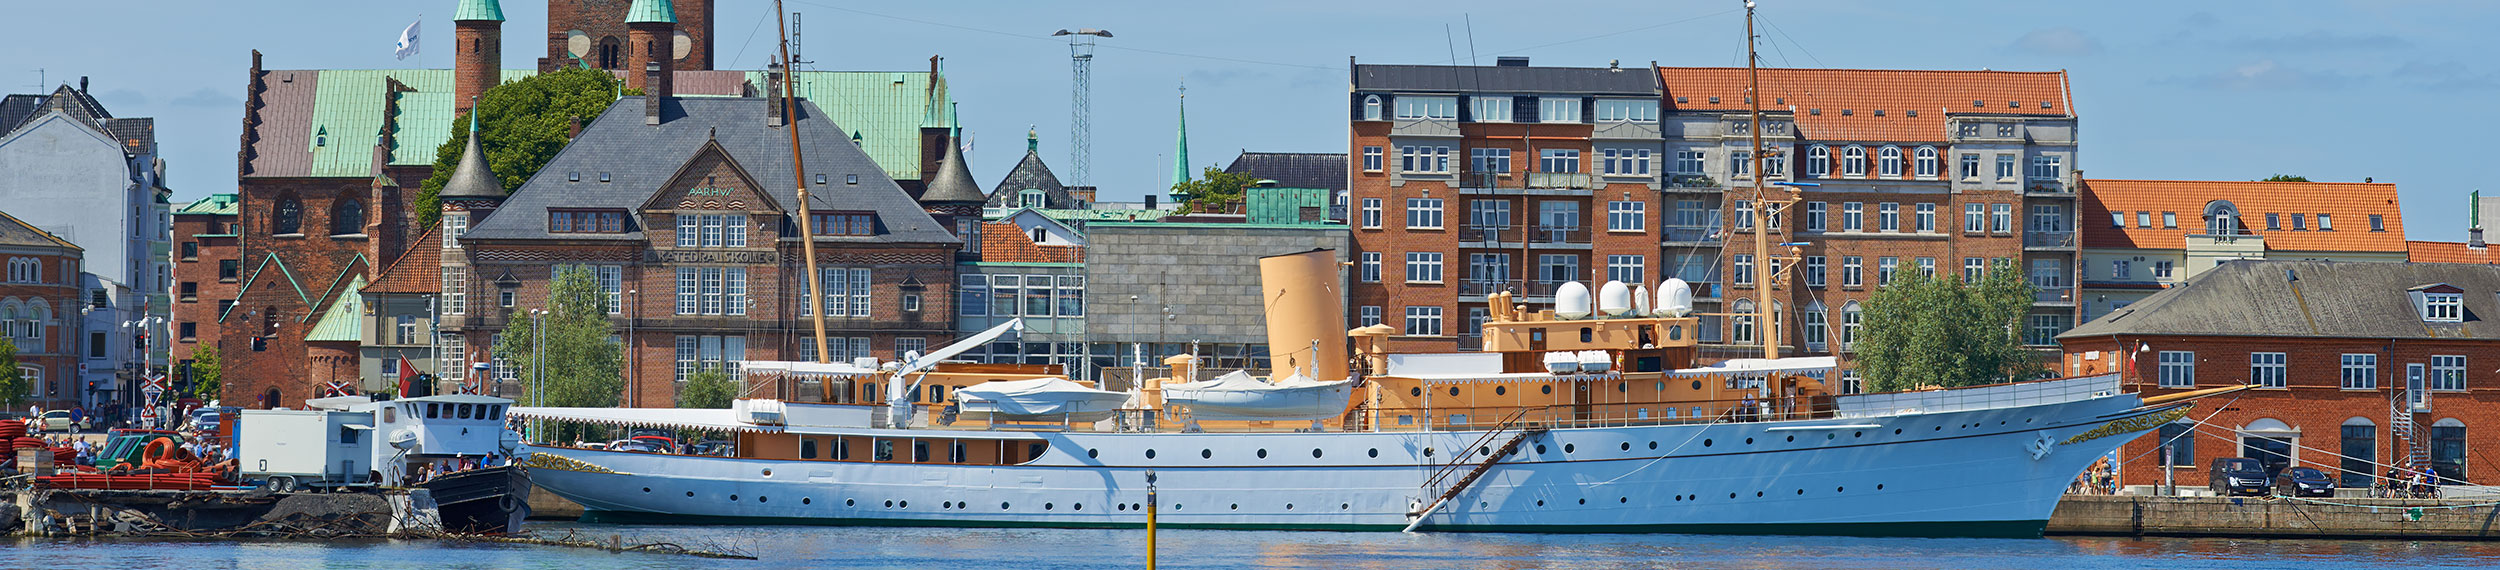 Her Royal Majesty's Yacht Dannebrog docked in the harbor on a beautiful day in Aarhus, Denmark.